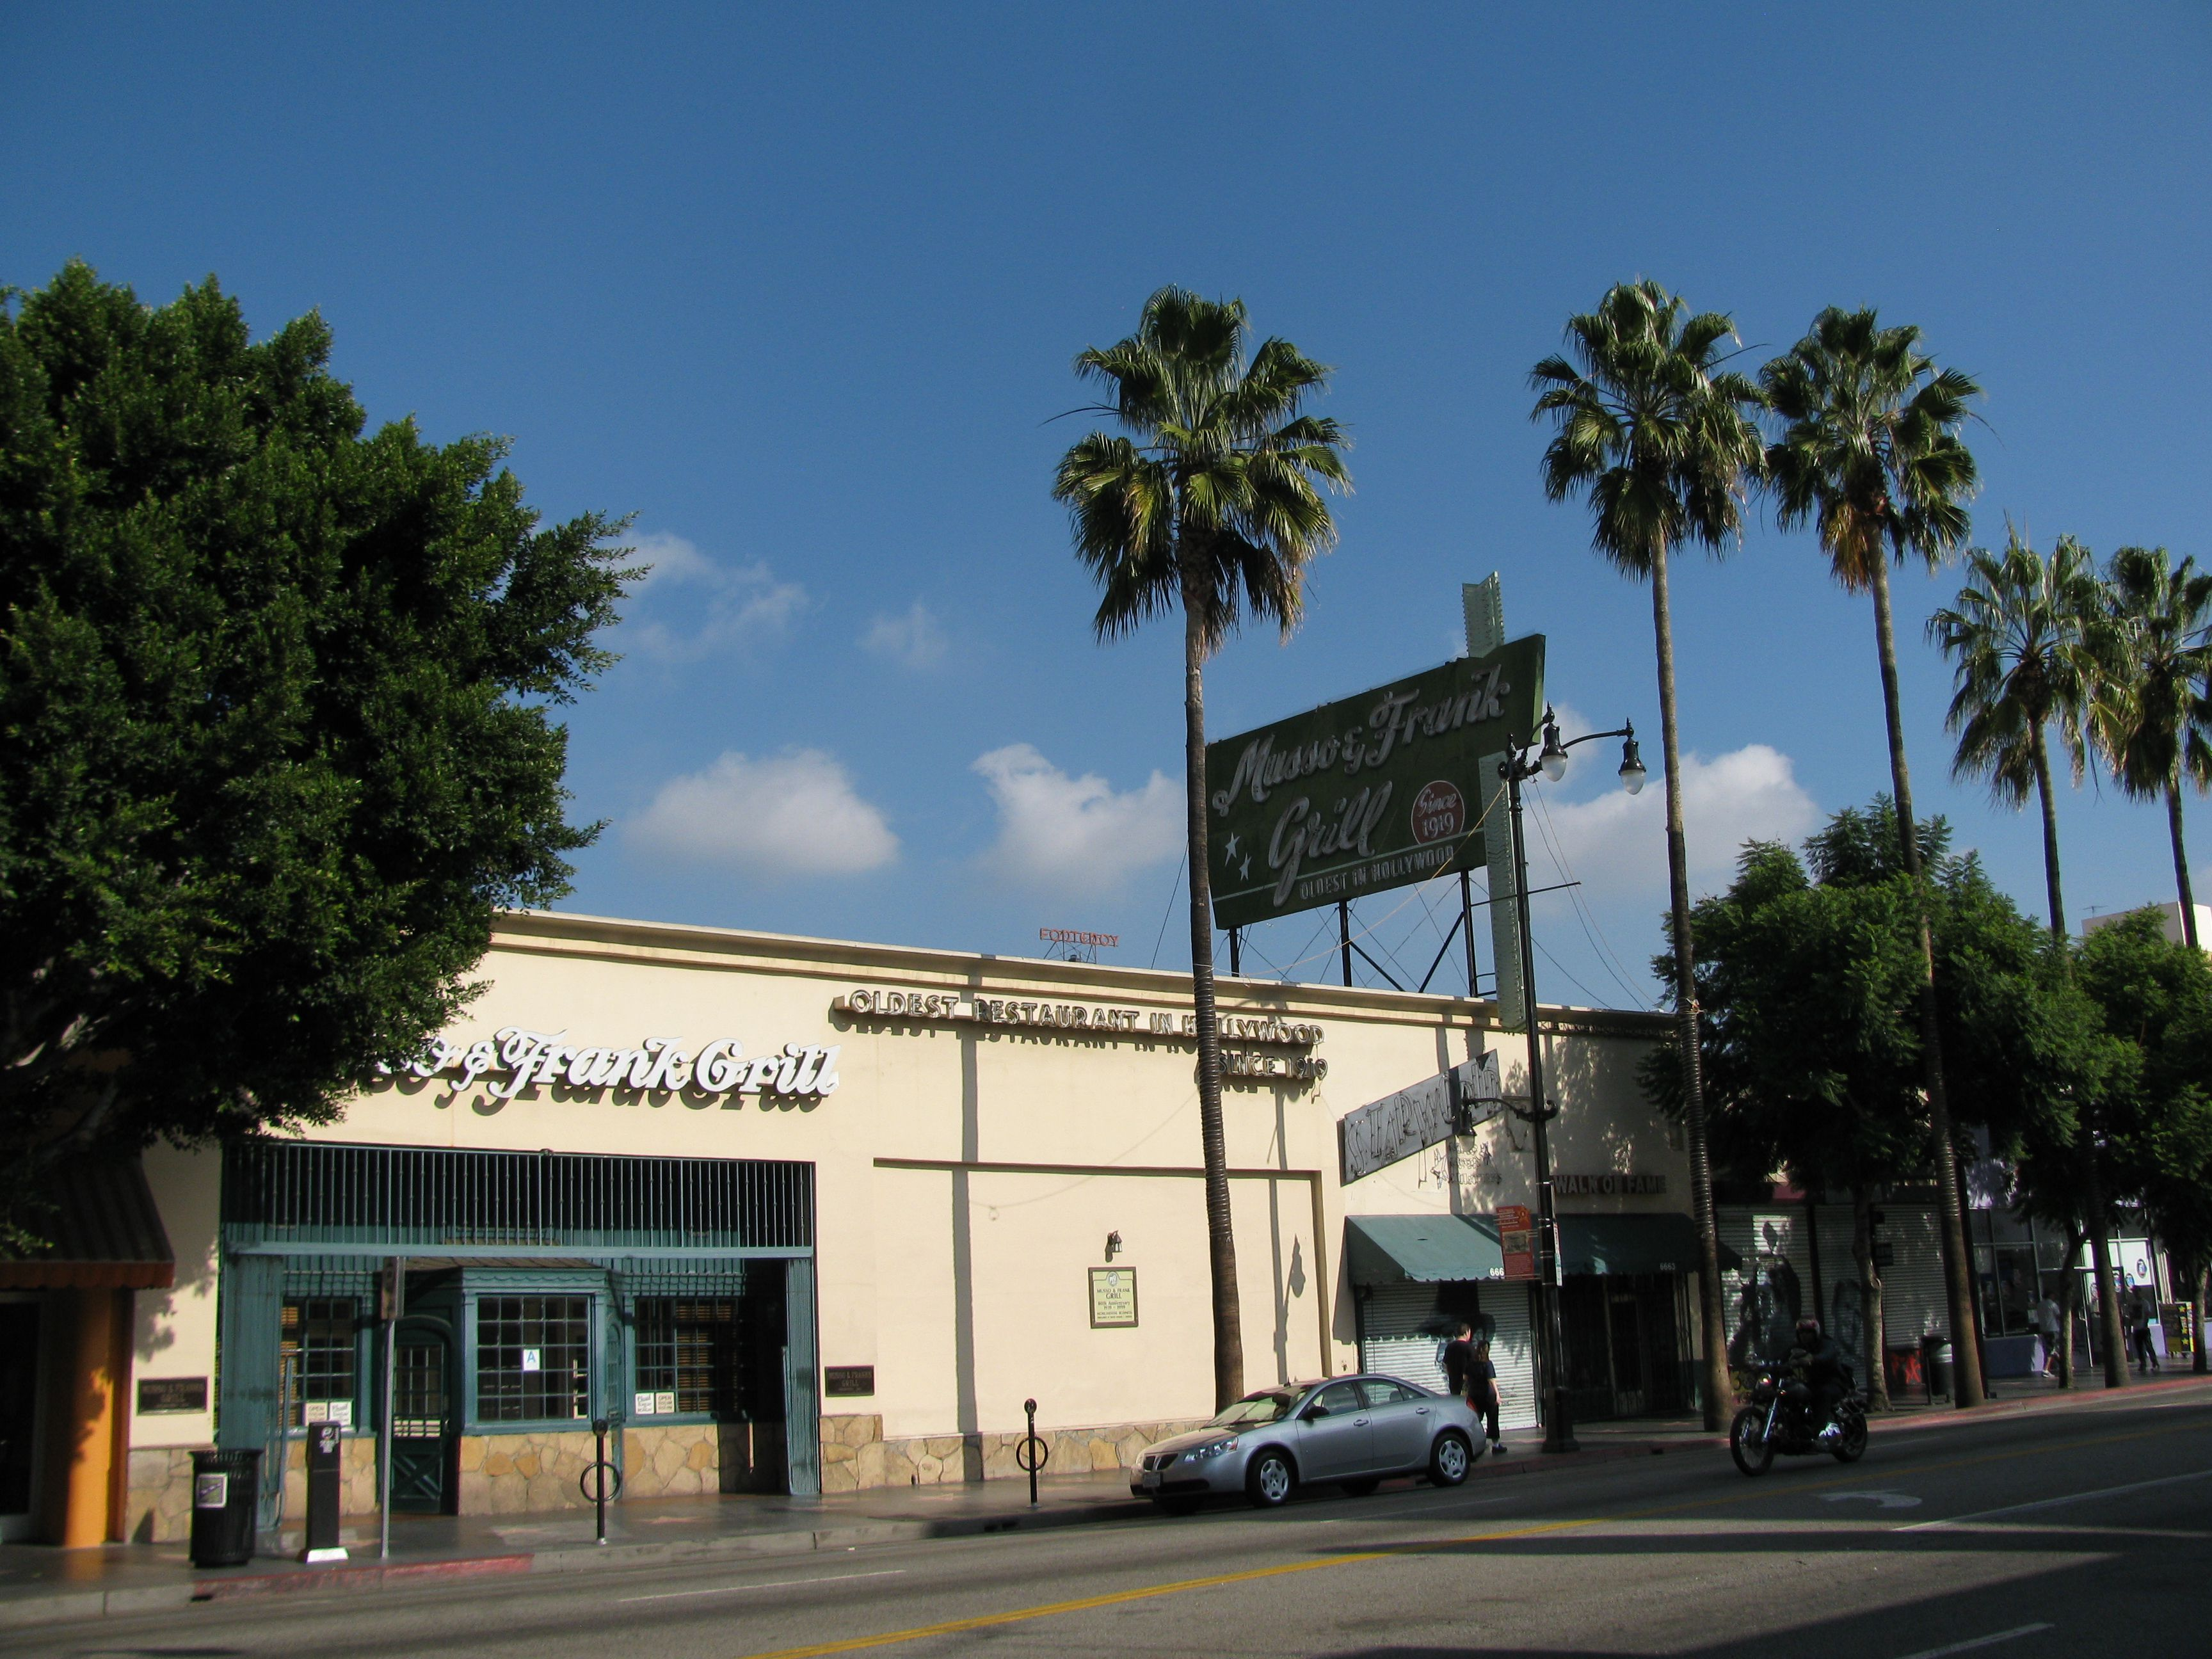 Street view of Musso and Frank's Grill on Hollywood Boulevard